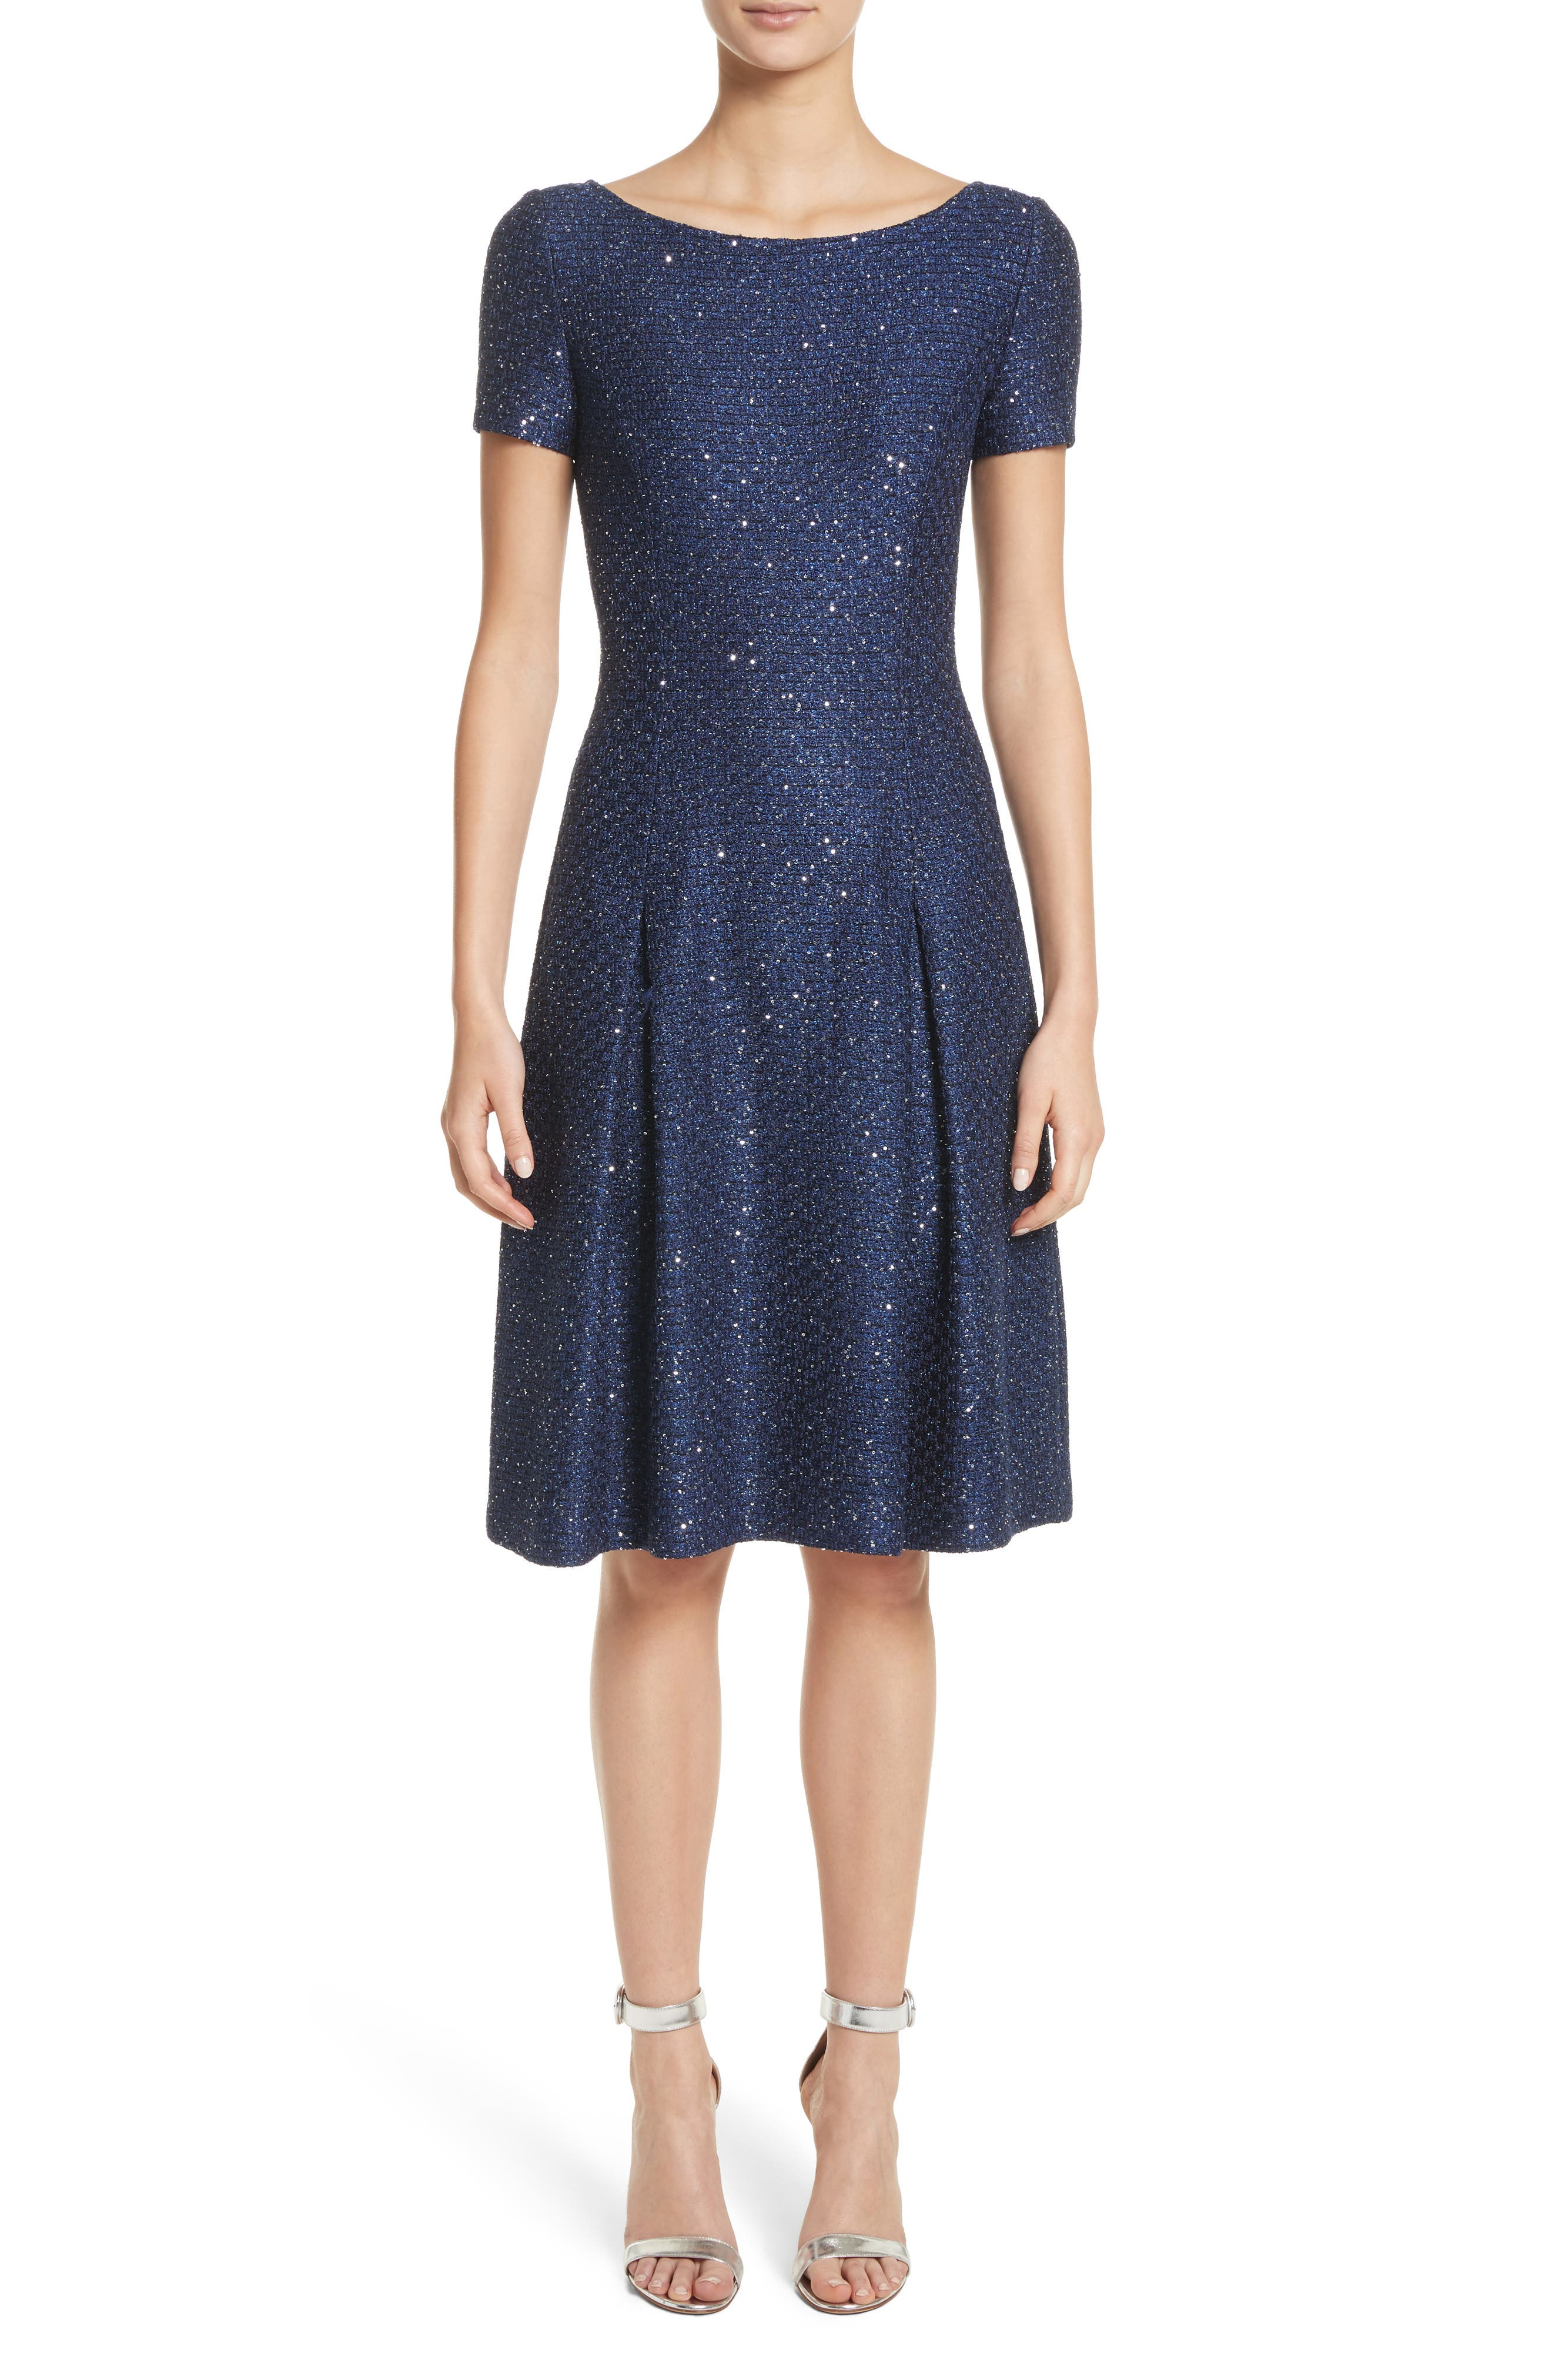 Main Image - St. John Collection Sparkle Sequin Knit Fit & Flare Dress